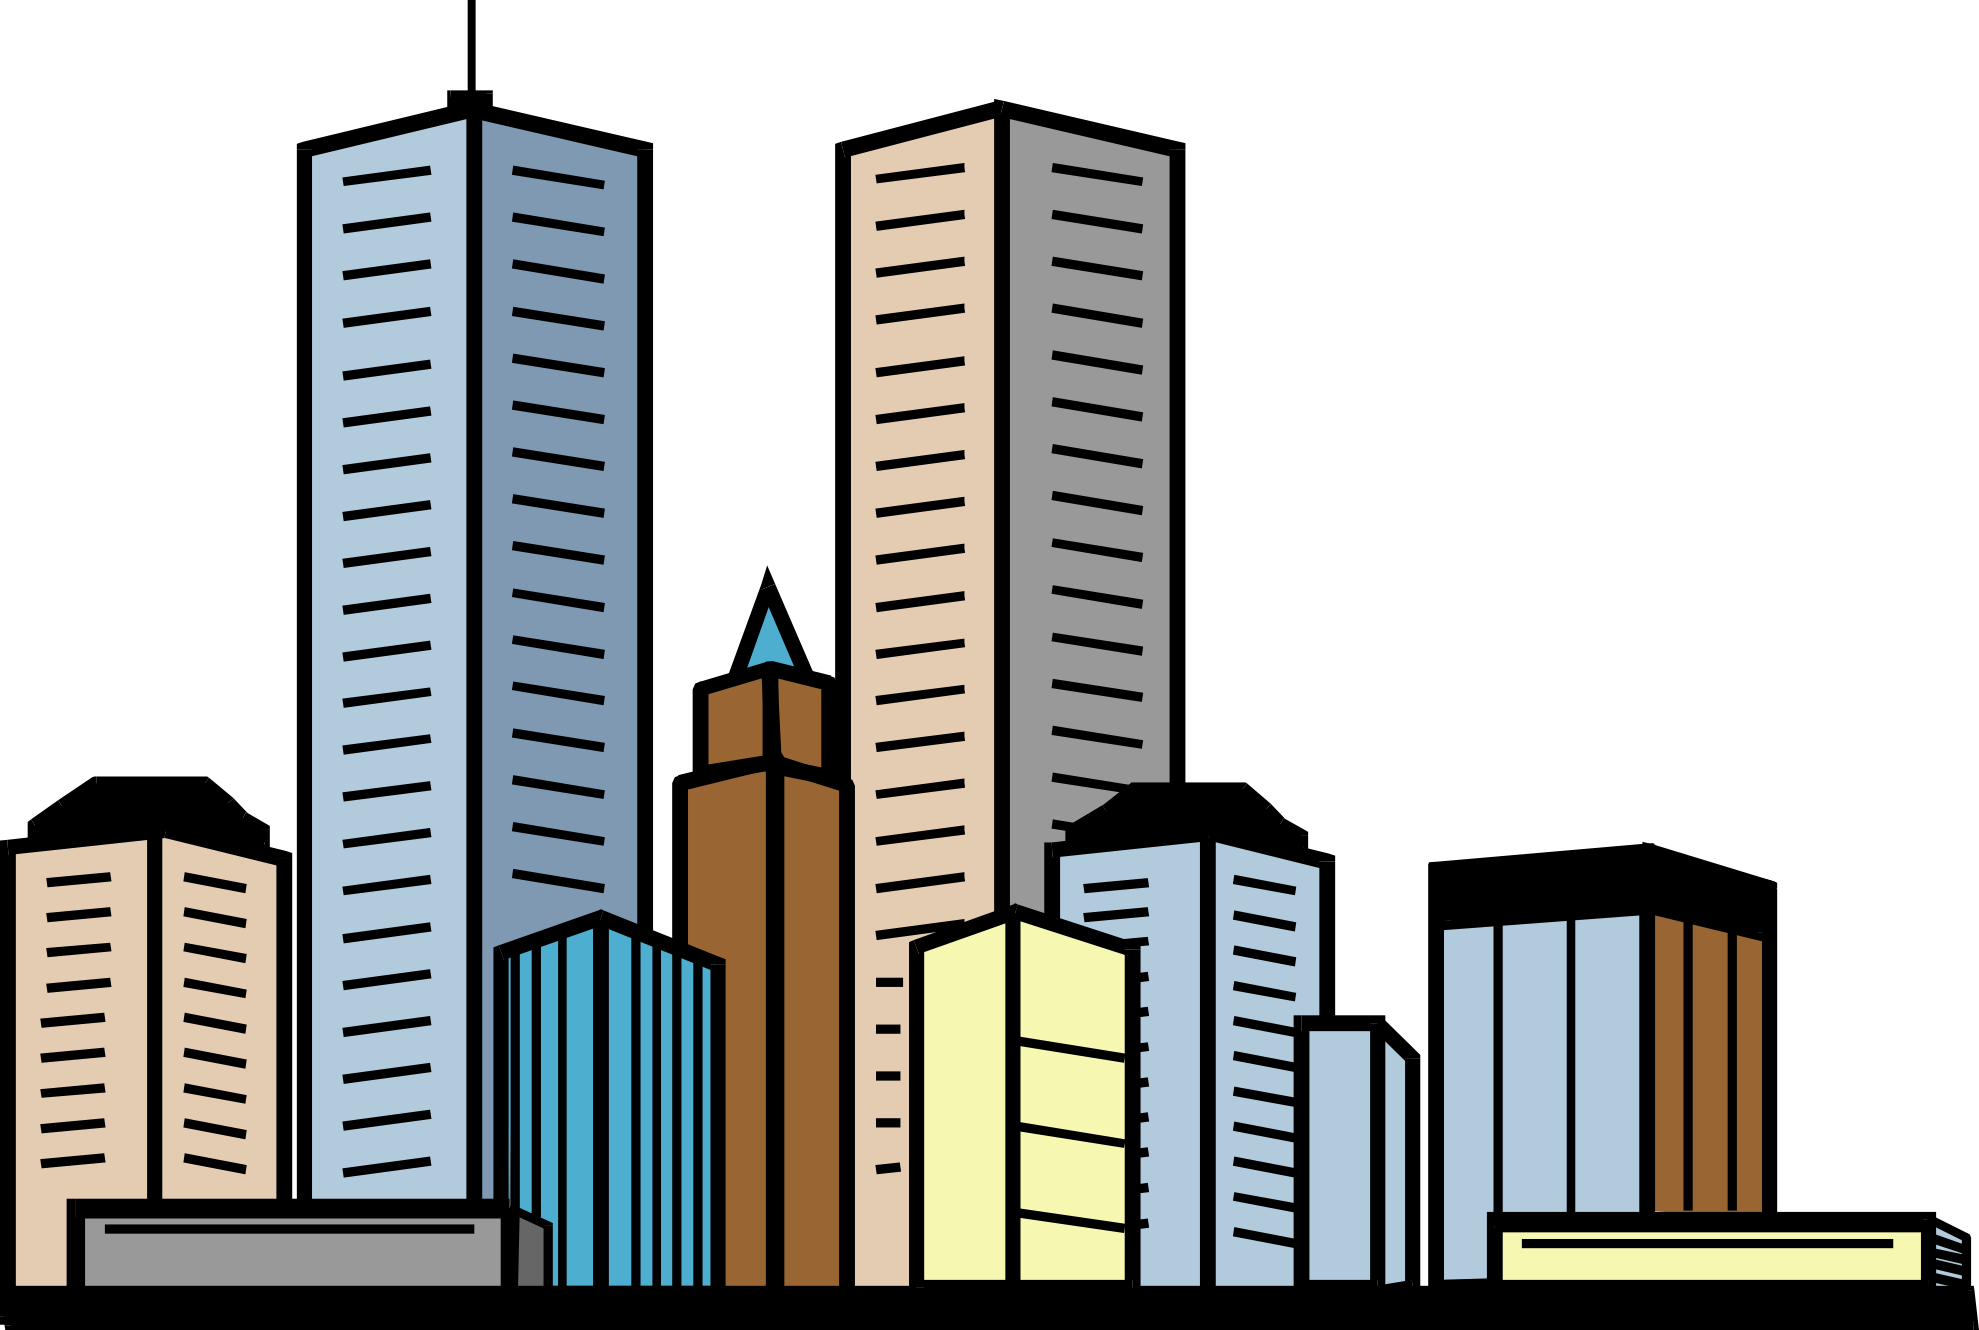 Skyscraper clipart skyline building And Panda skyscraper%20clipart Clipart